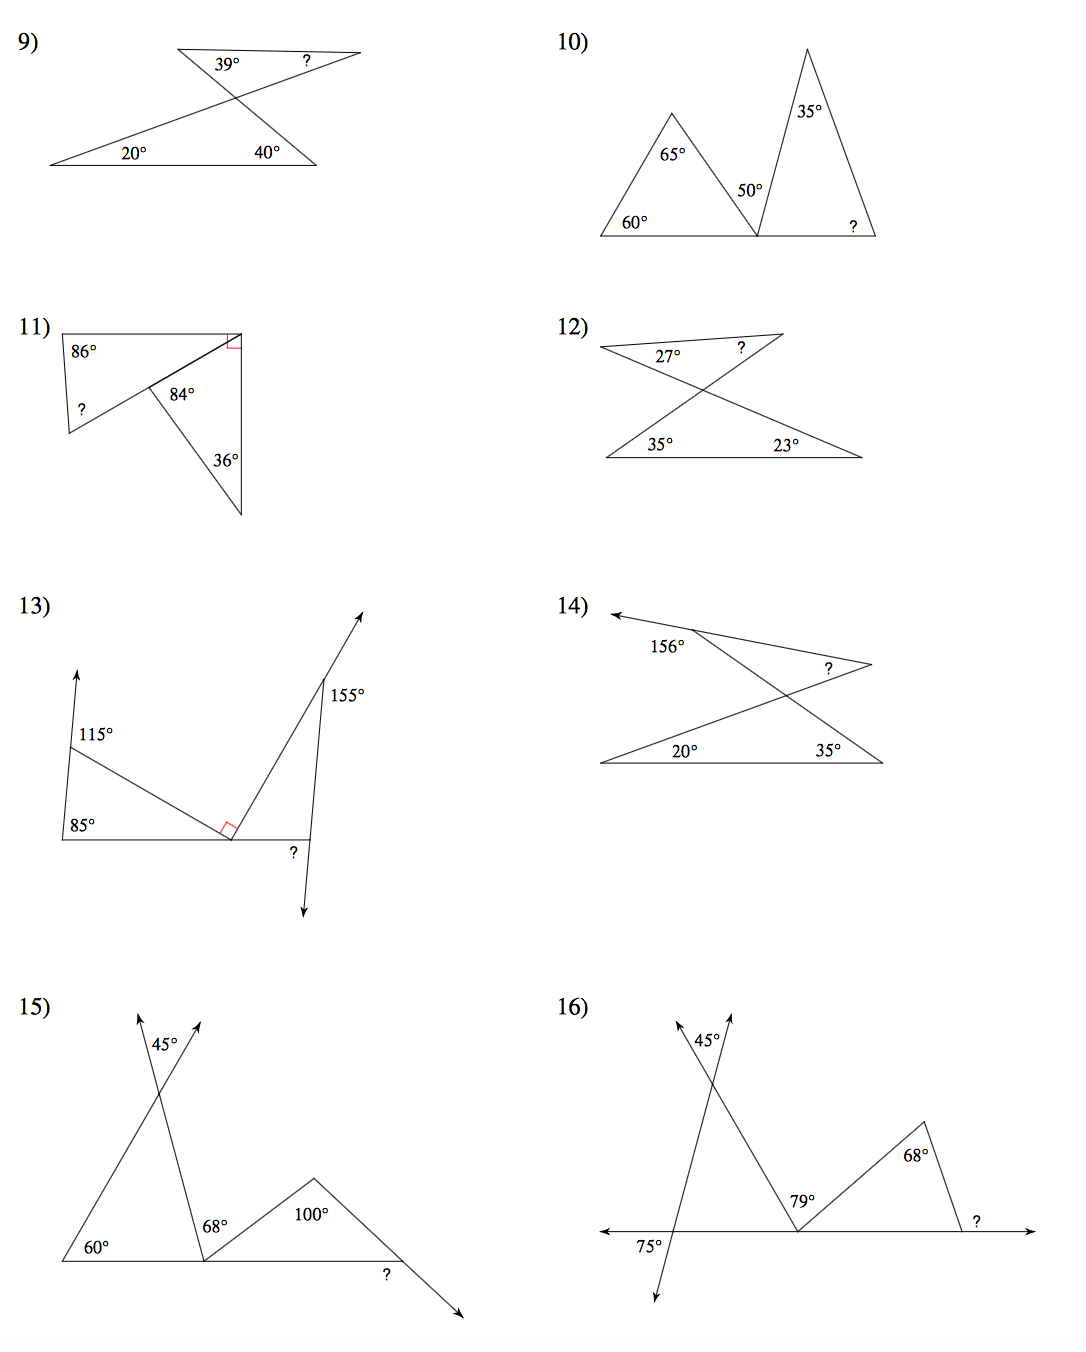 geometry worksheet congruent triangles answers  Grimmbr alphabet worksheets, education, free worksheets, learning, math worksheets, and worksheets Triangle Congruence Worksheet With Answers 1352 x 1086